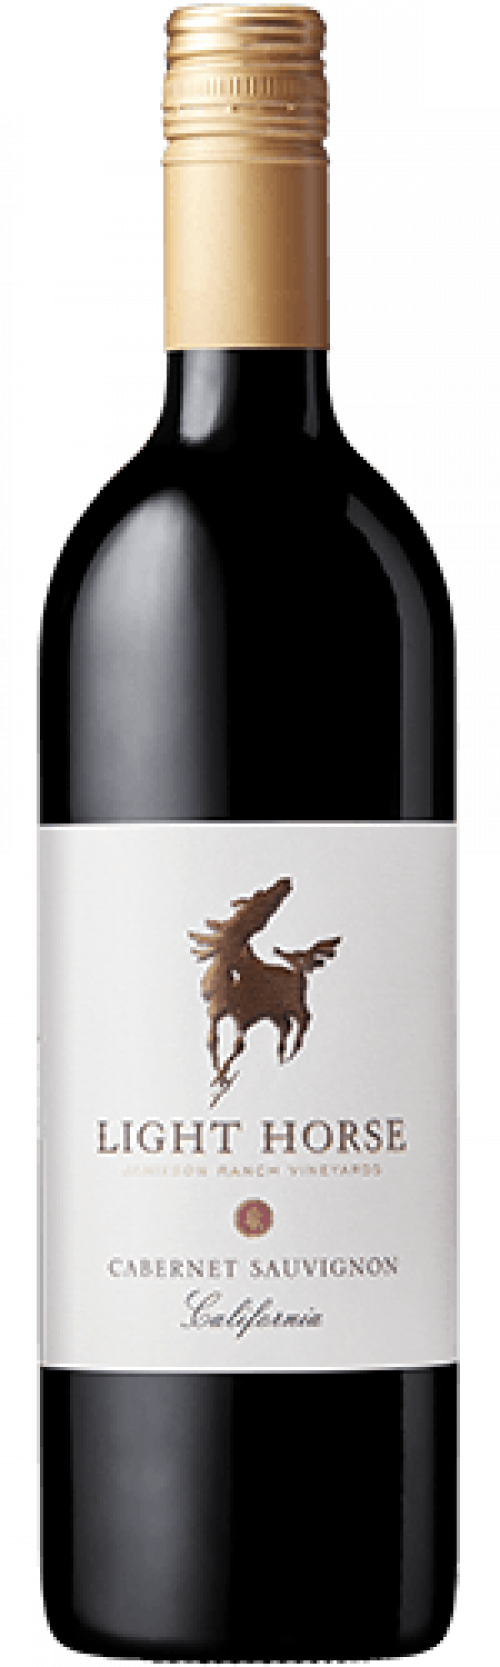 2017 Light Horse Cabernet Sauvignon 750ml